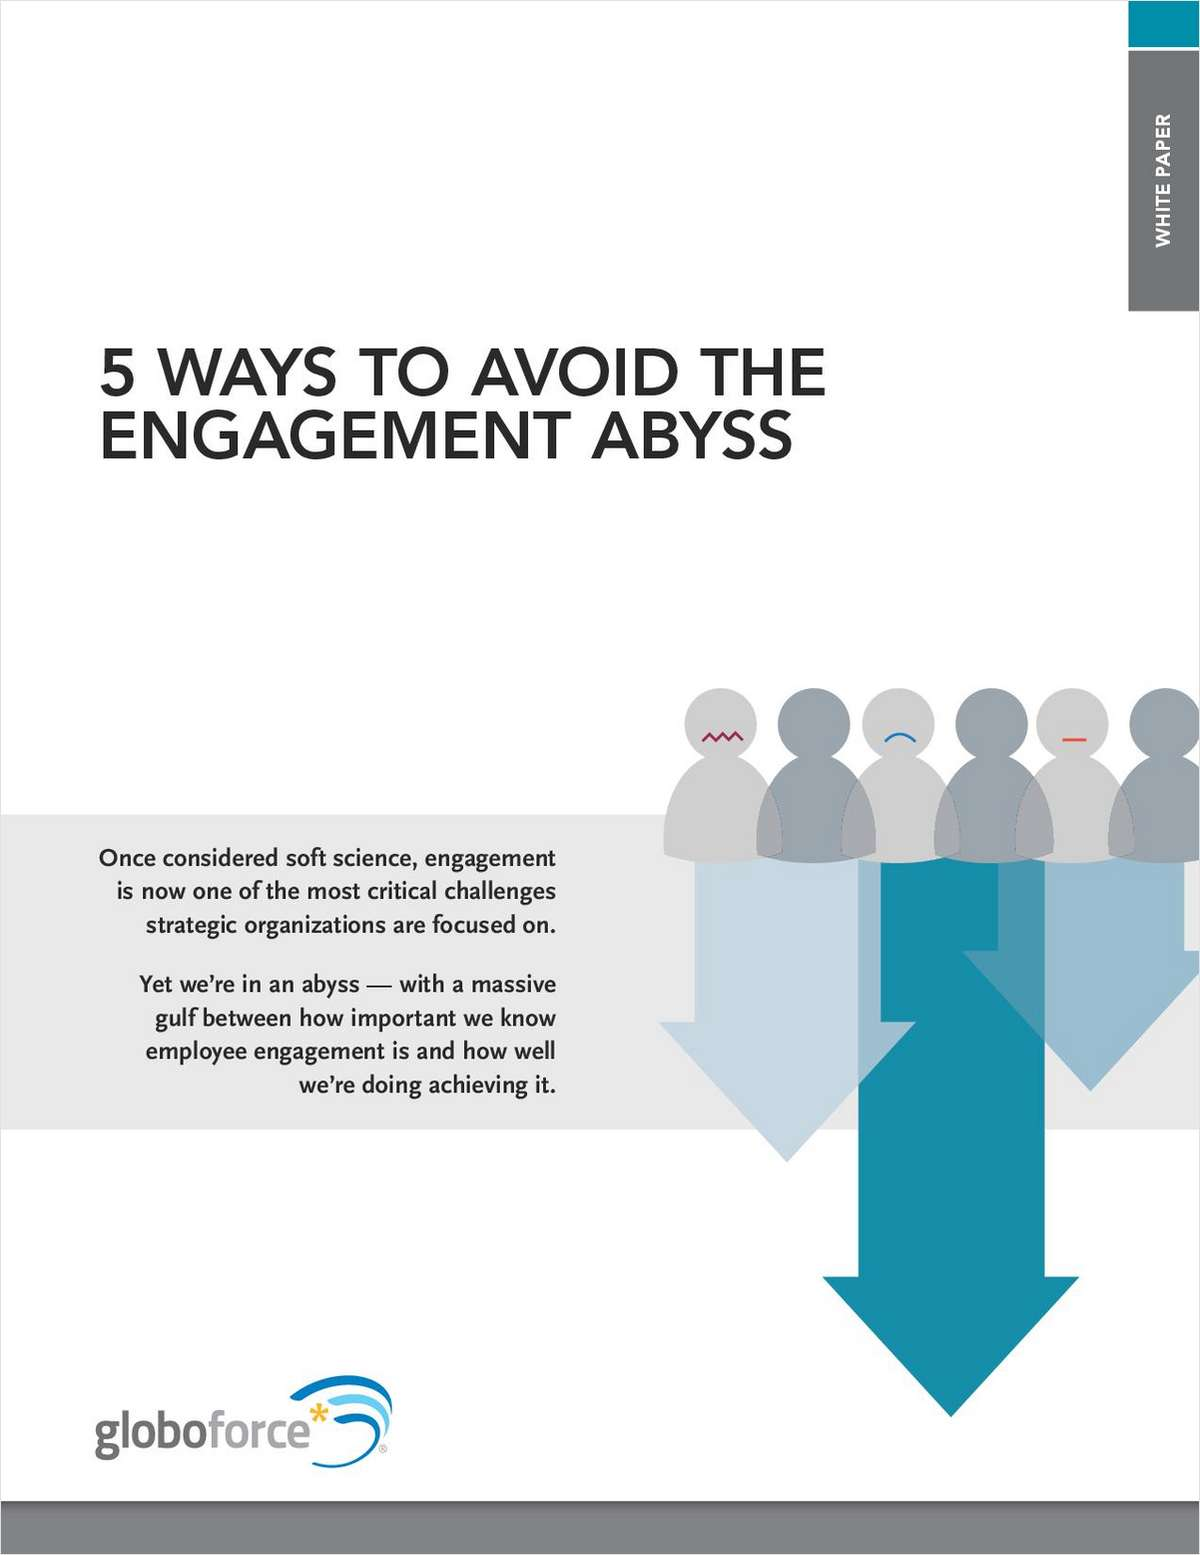 5 Ways to Avoid the Engagement Abyss